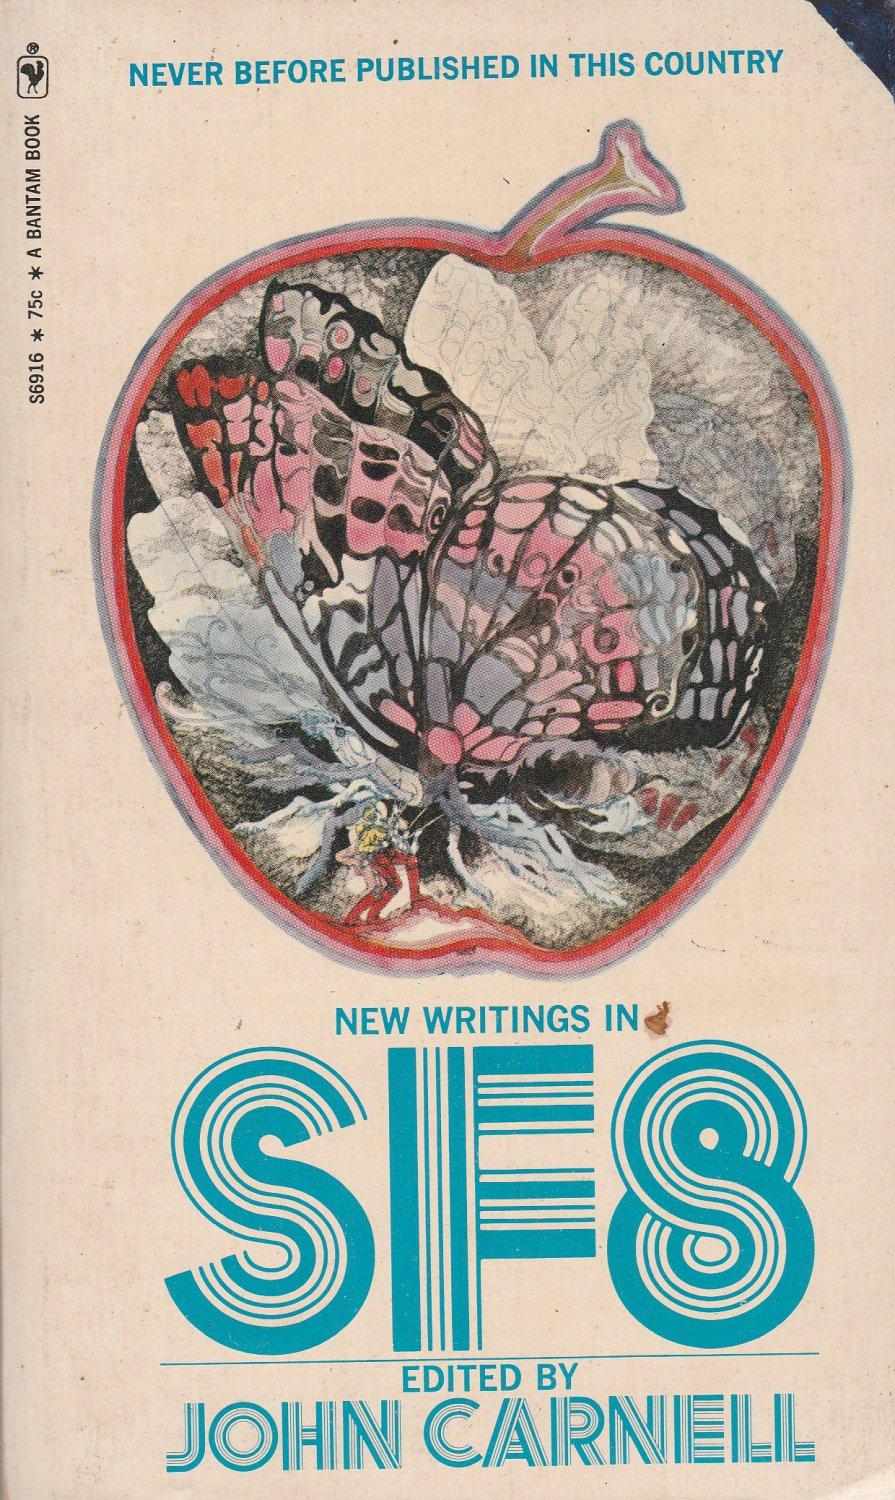 New Writings in SF8 edited by John Carnell